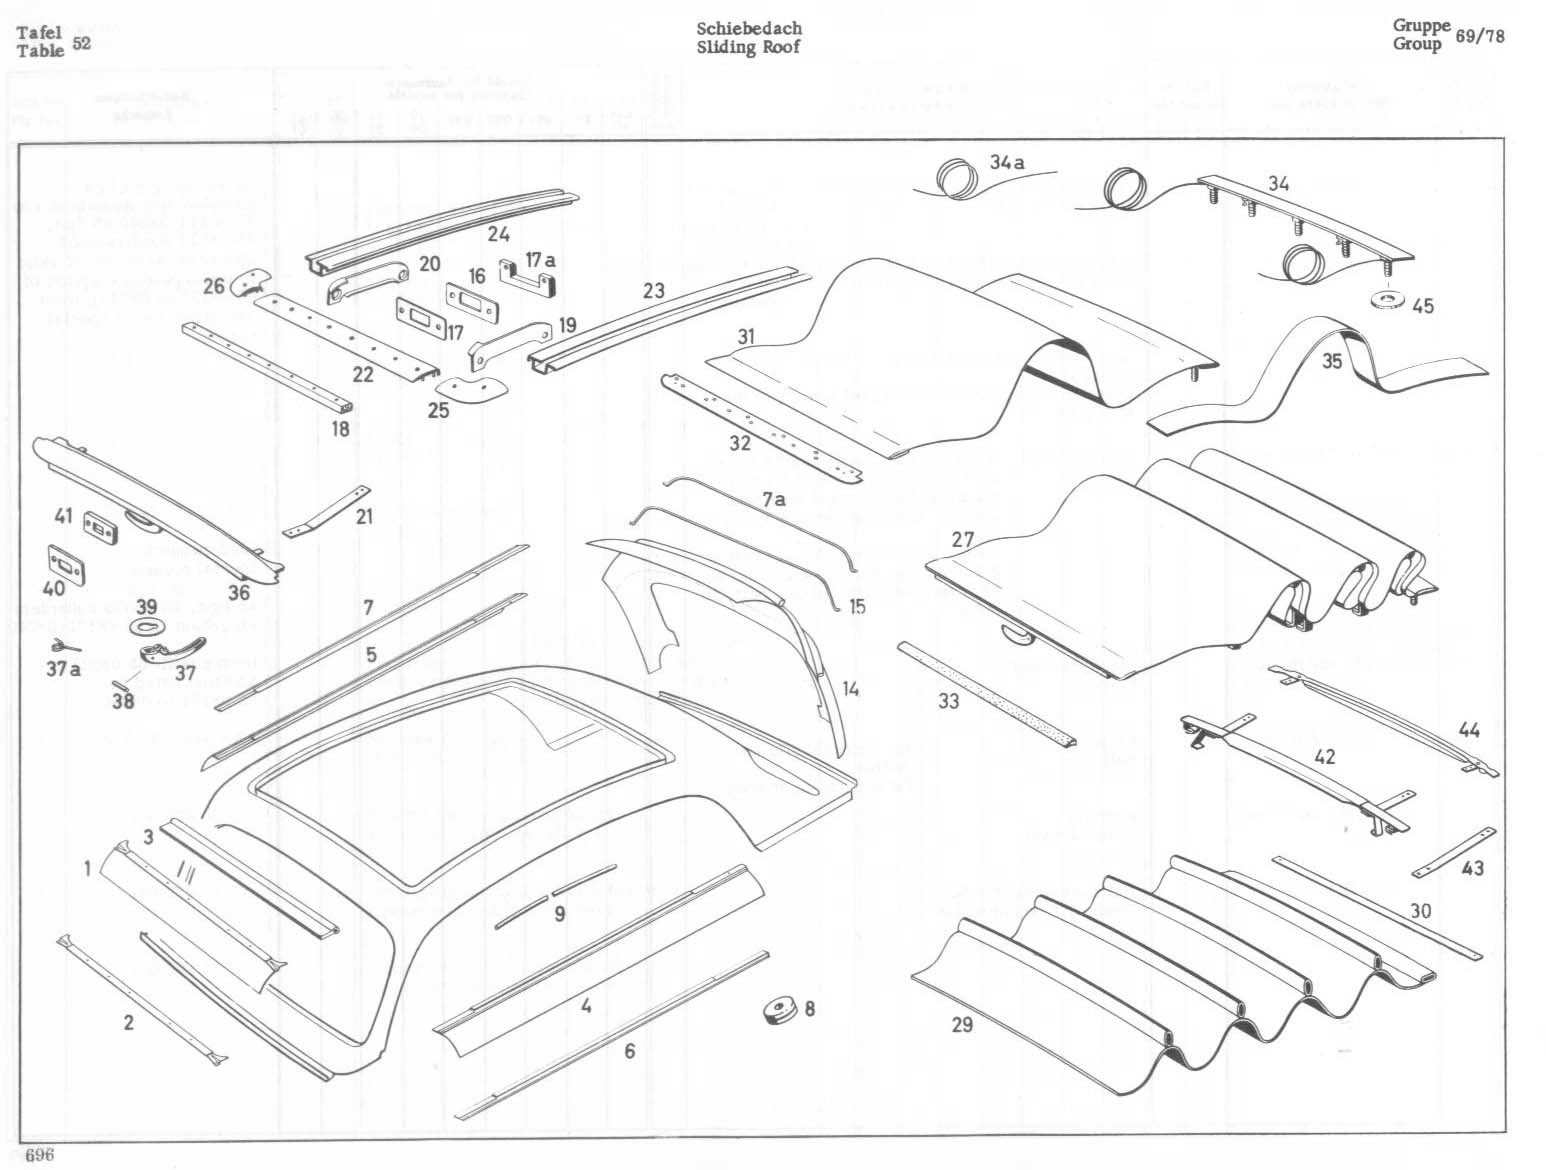 webasto sunroof wiring diagram inalfa sunroof wiring diagram webasto sunroof parts diagram wiring radio wiring diagram #11